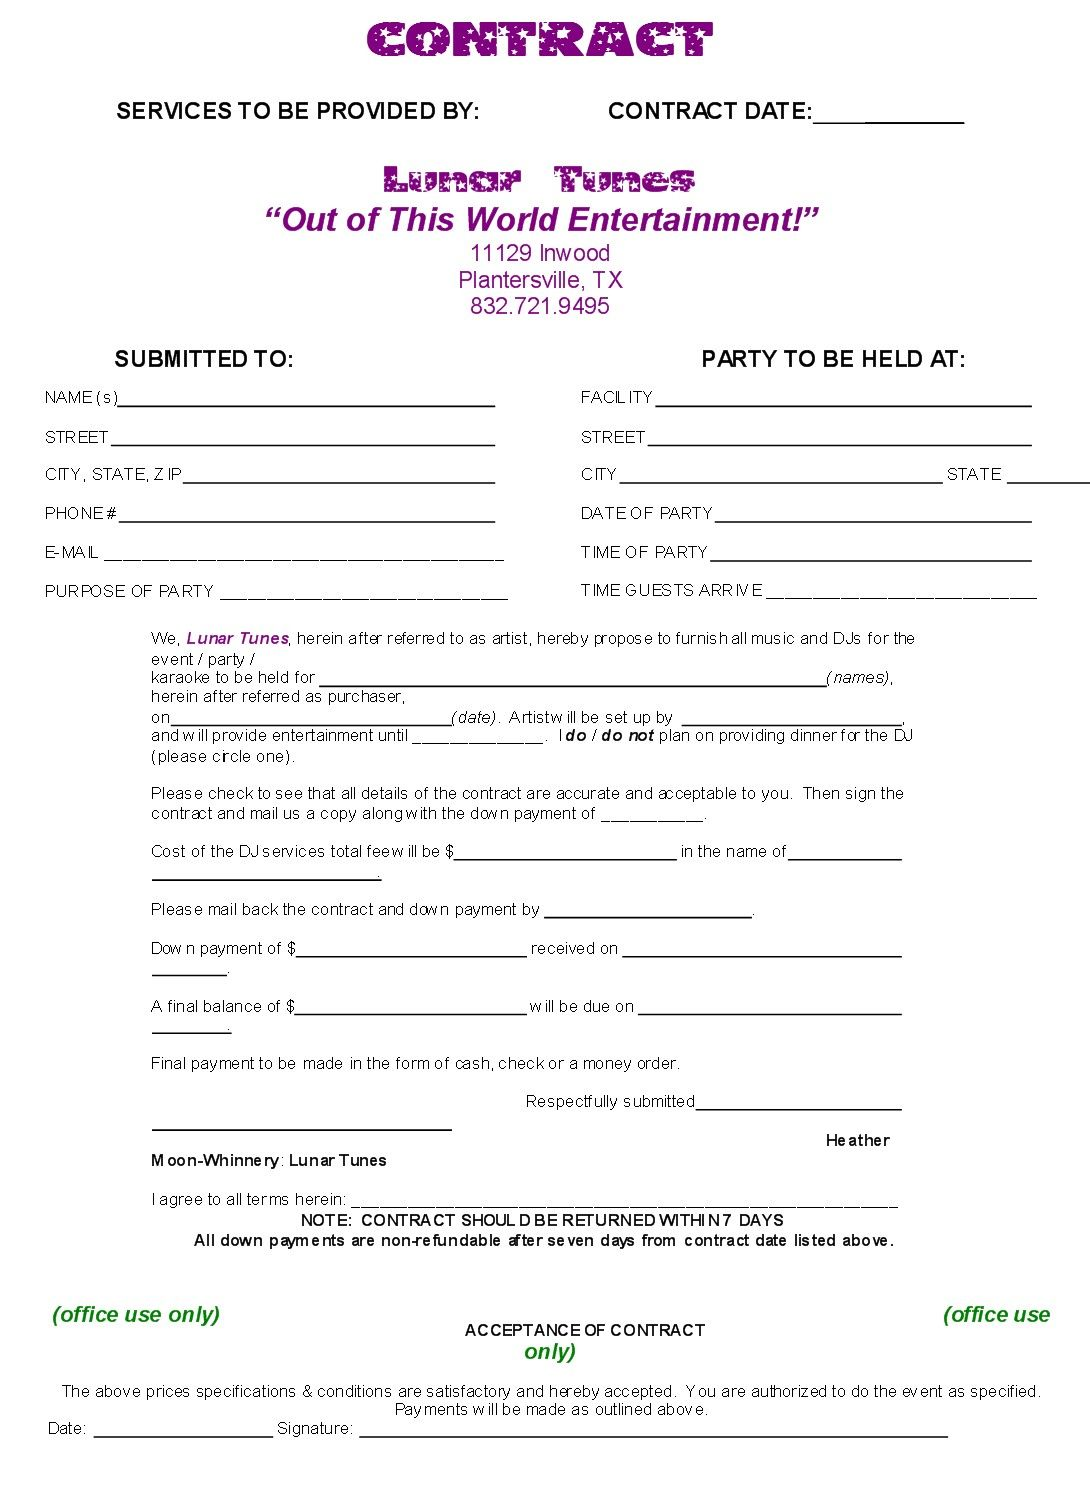 Dj Contract Template NON COMPETE AGREEMENT dj agreement – Sample Non Compete Agreement Template